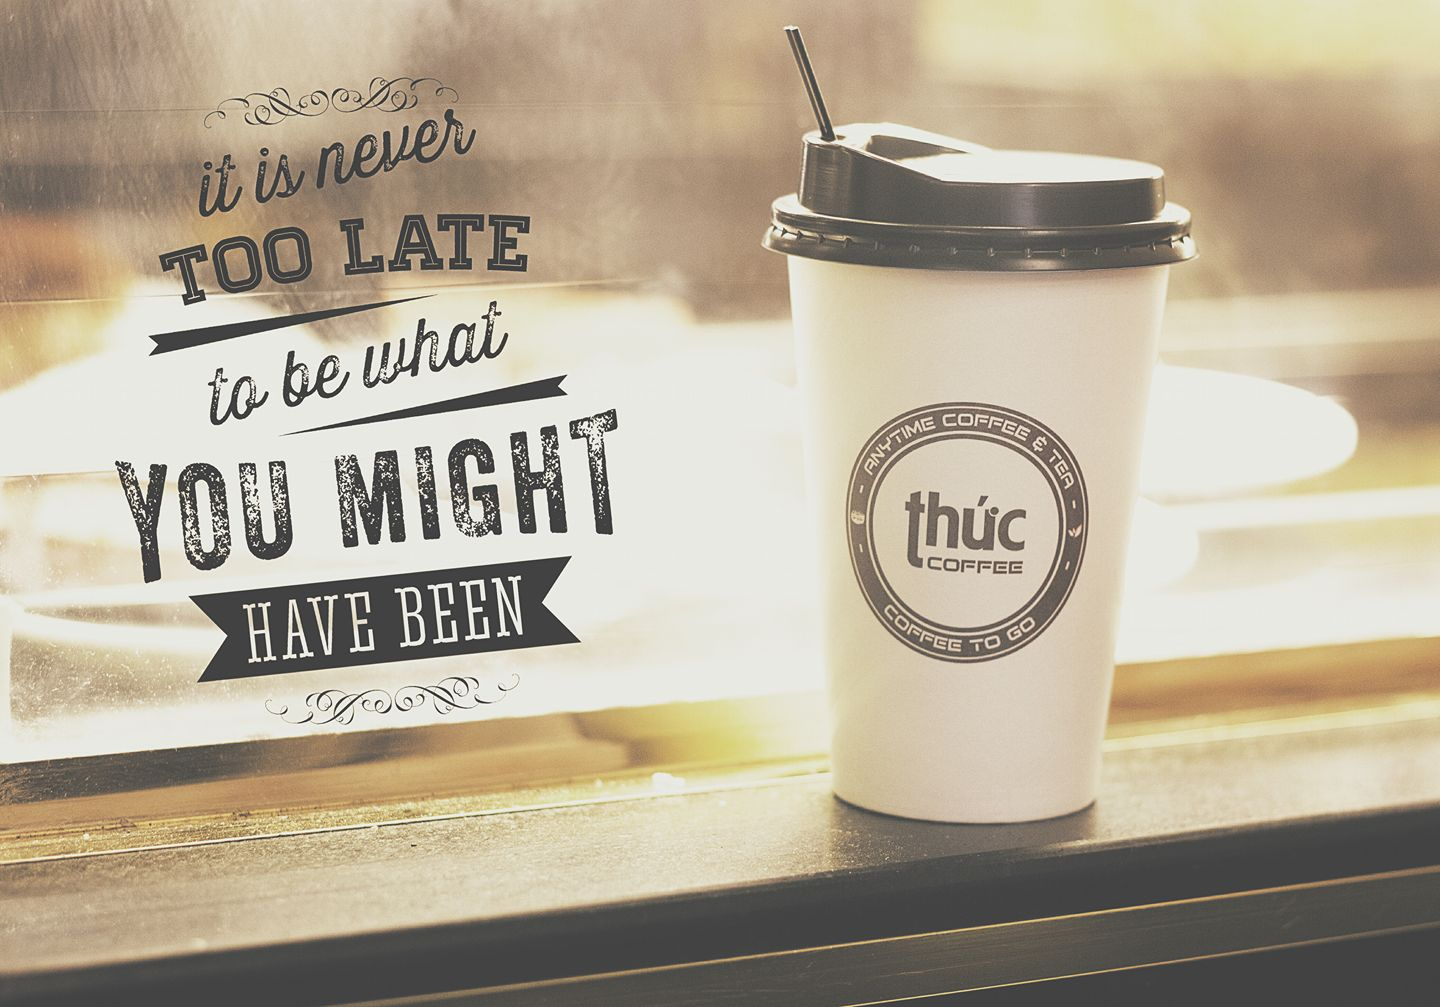 Thức Coffee - At Thức, the life goes on 24/7